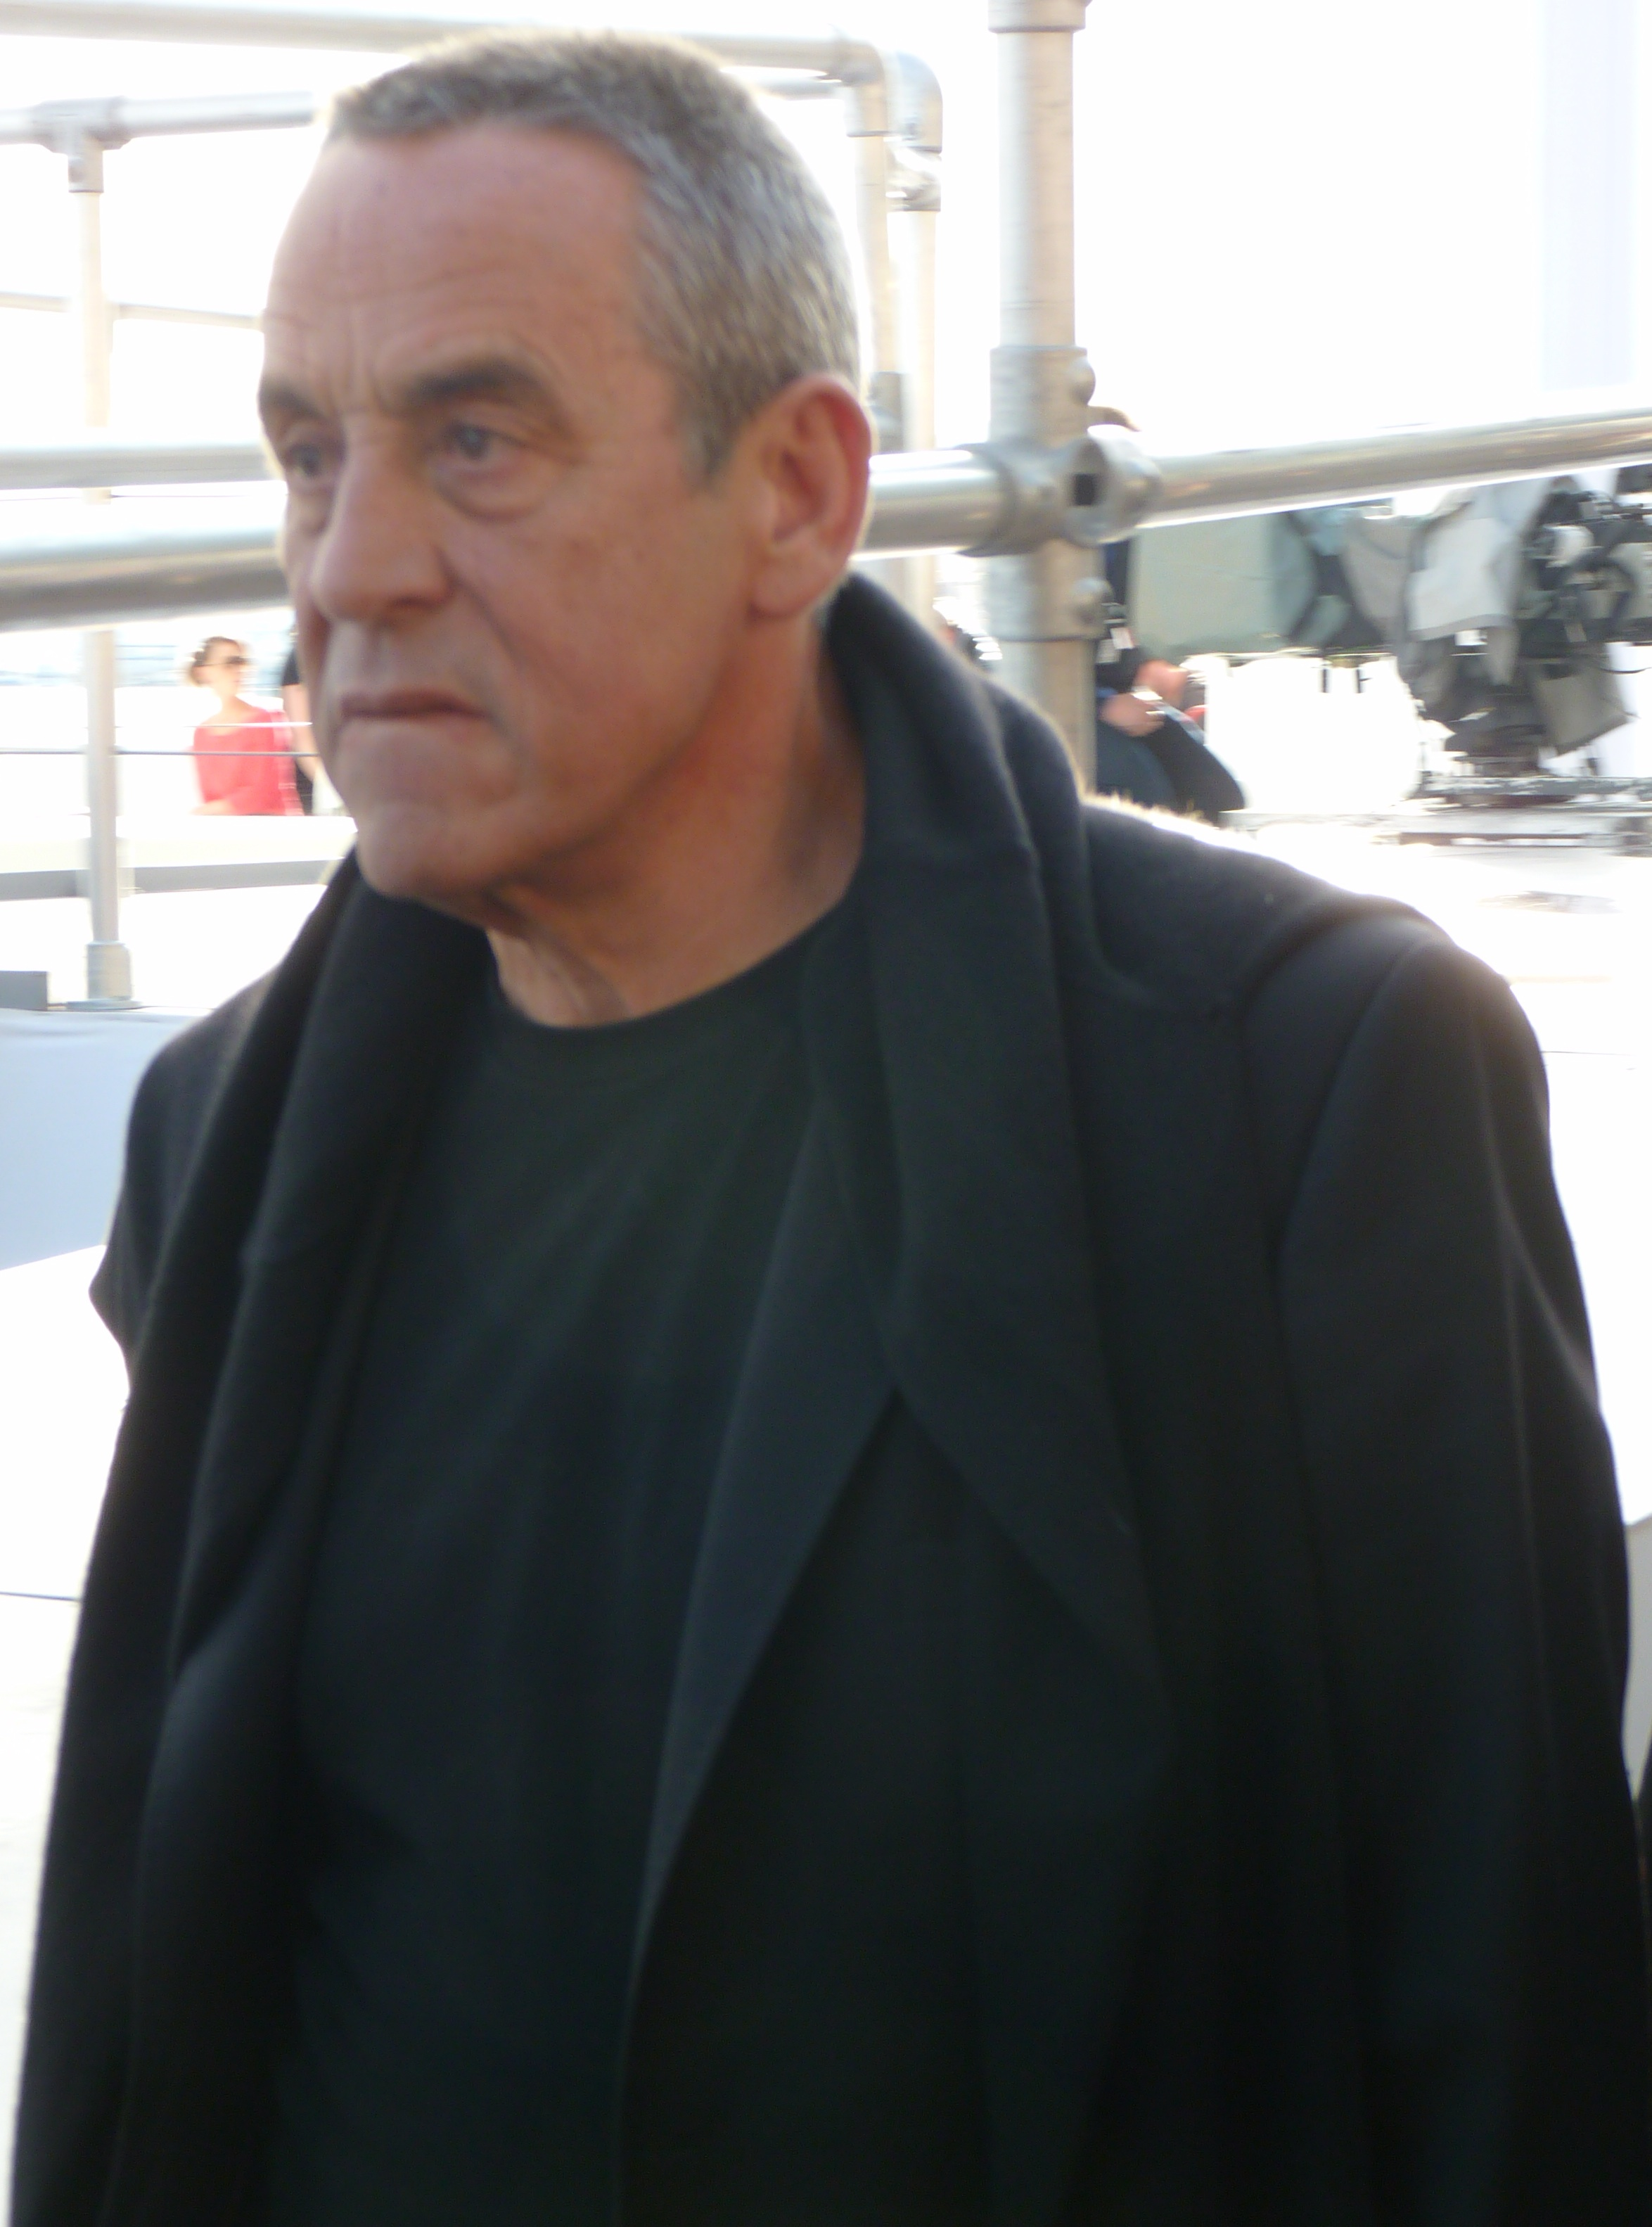 File Thierry Ardisson Extracted Jpg Wikimedia Commons